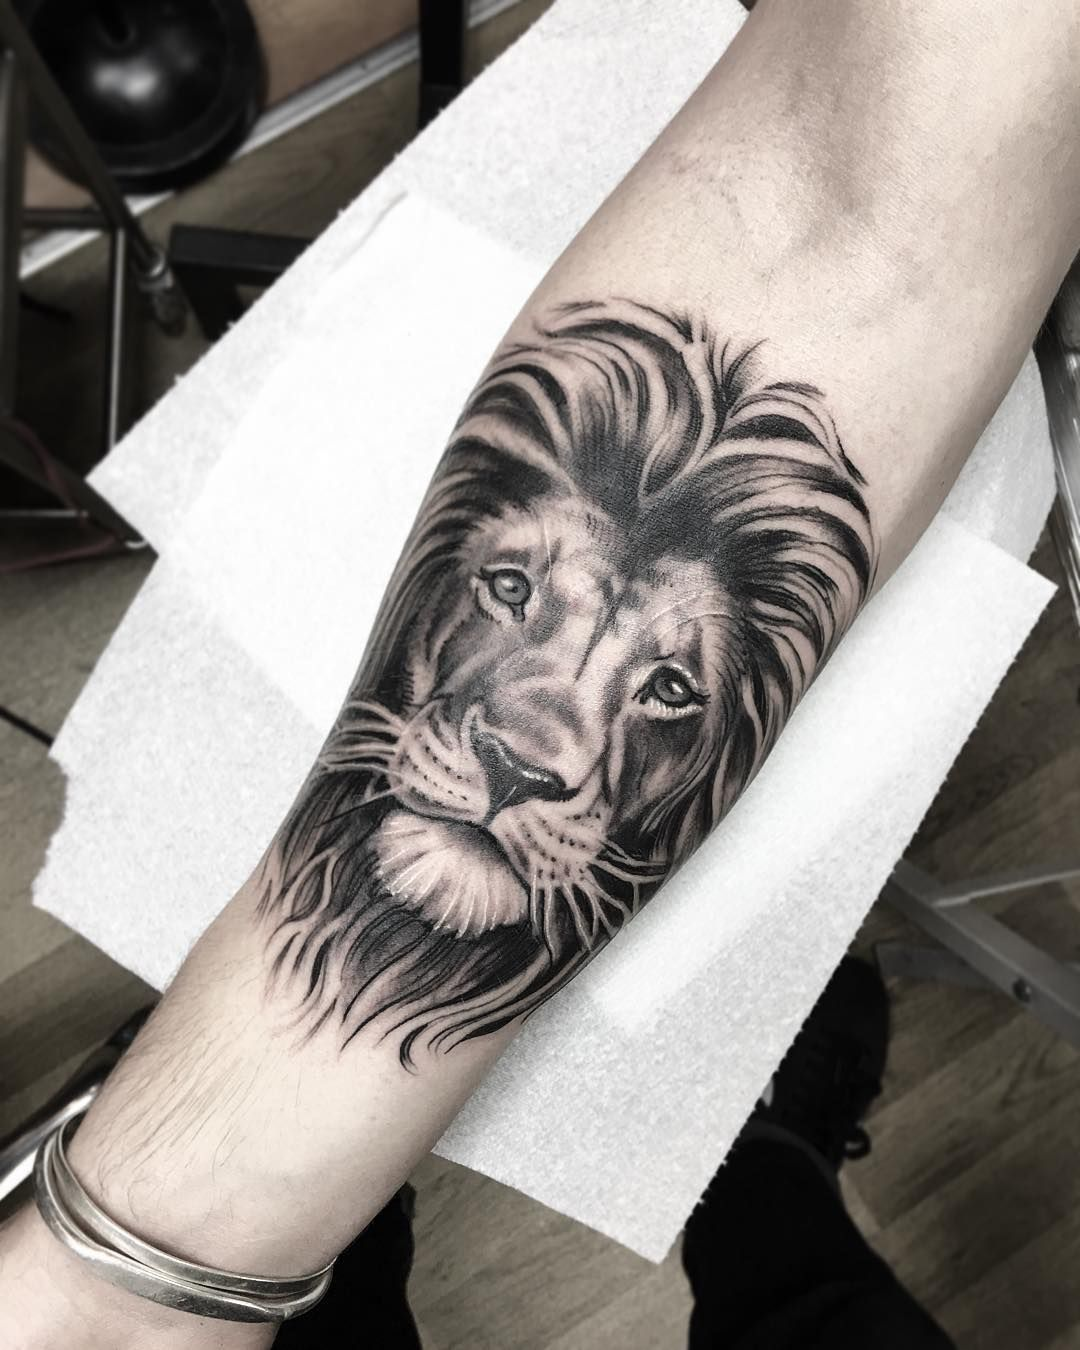 jordanbaxtertattoo: Brighter picture of this Lion I did yesterday ...